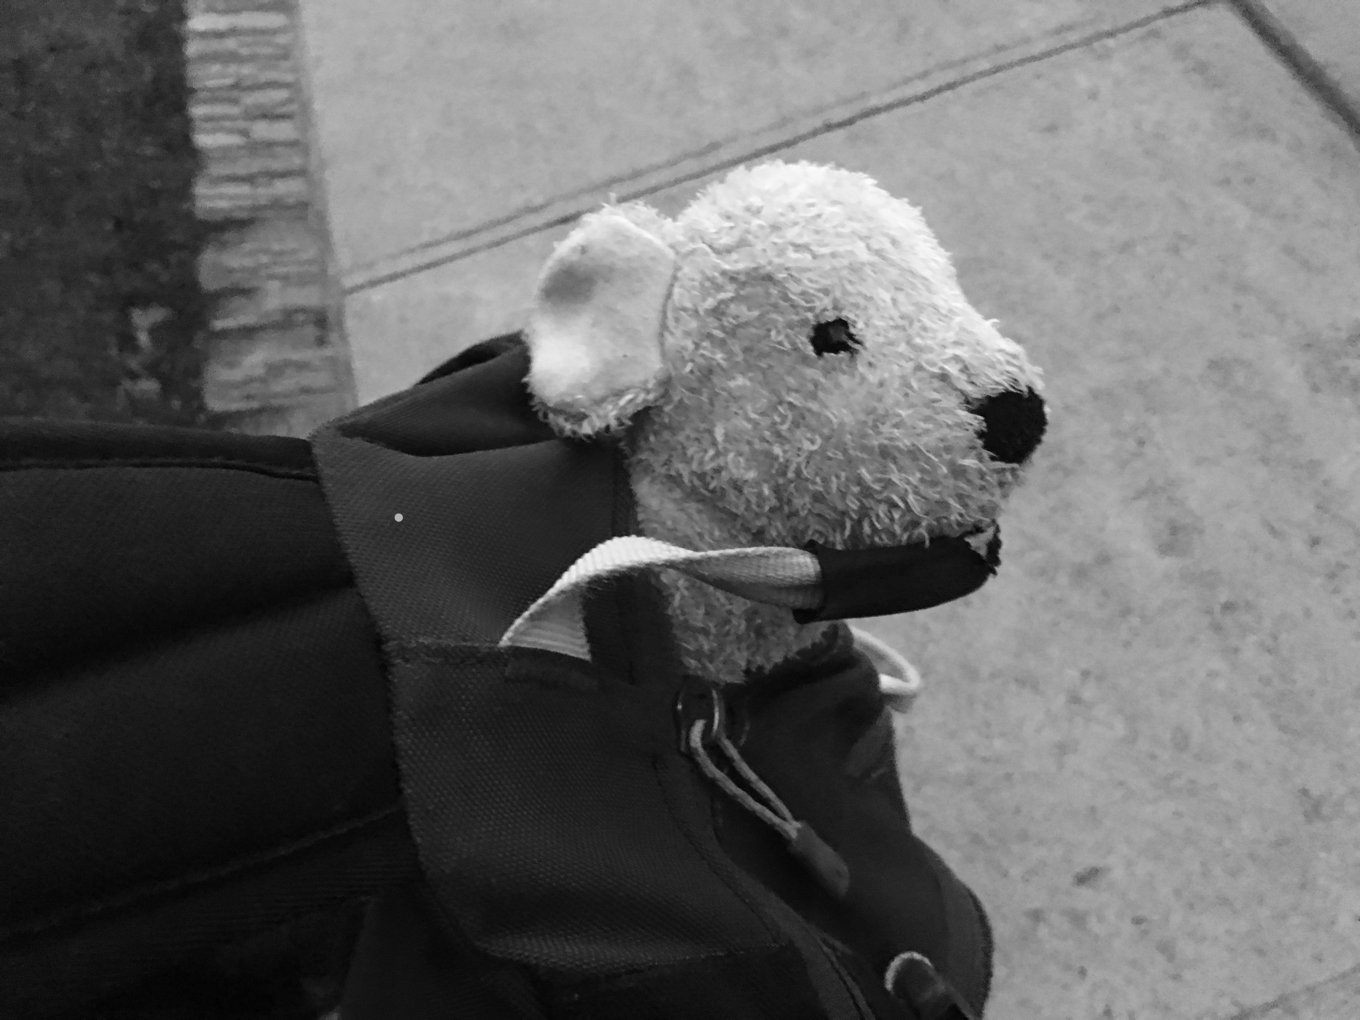 A small stuffed dog sticks its head out of a backpack